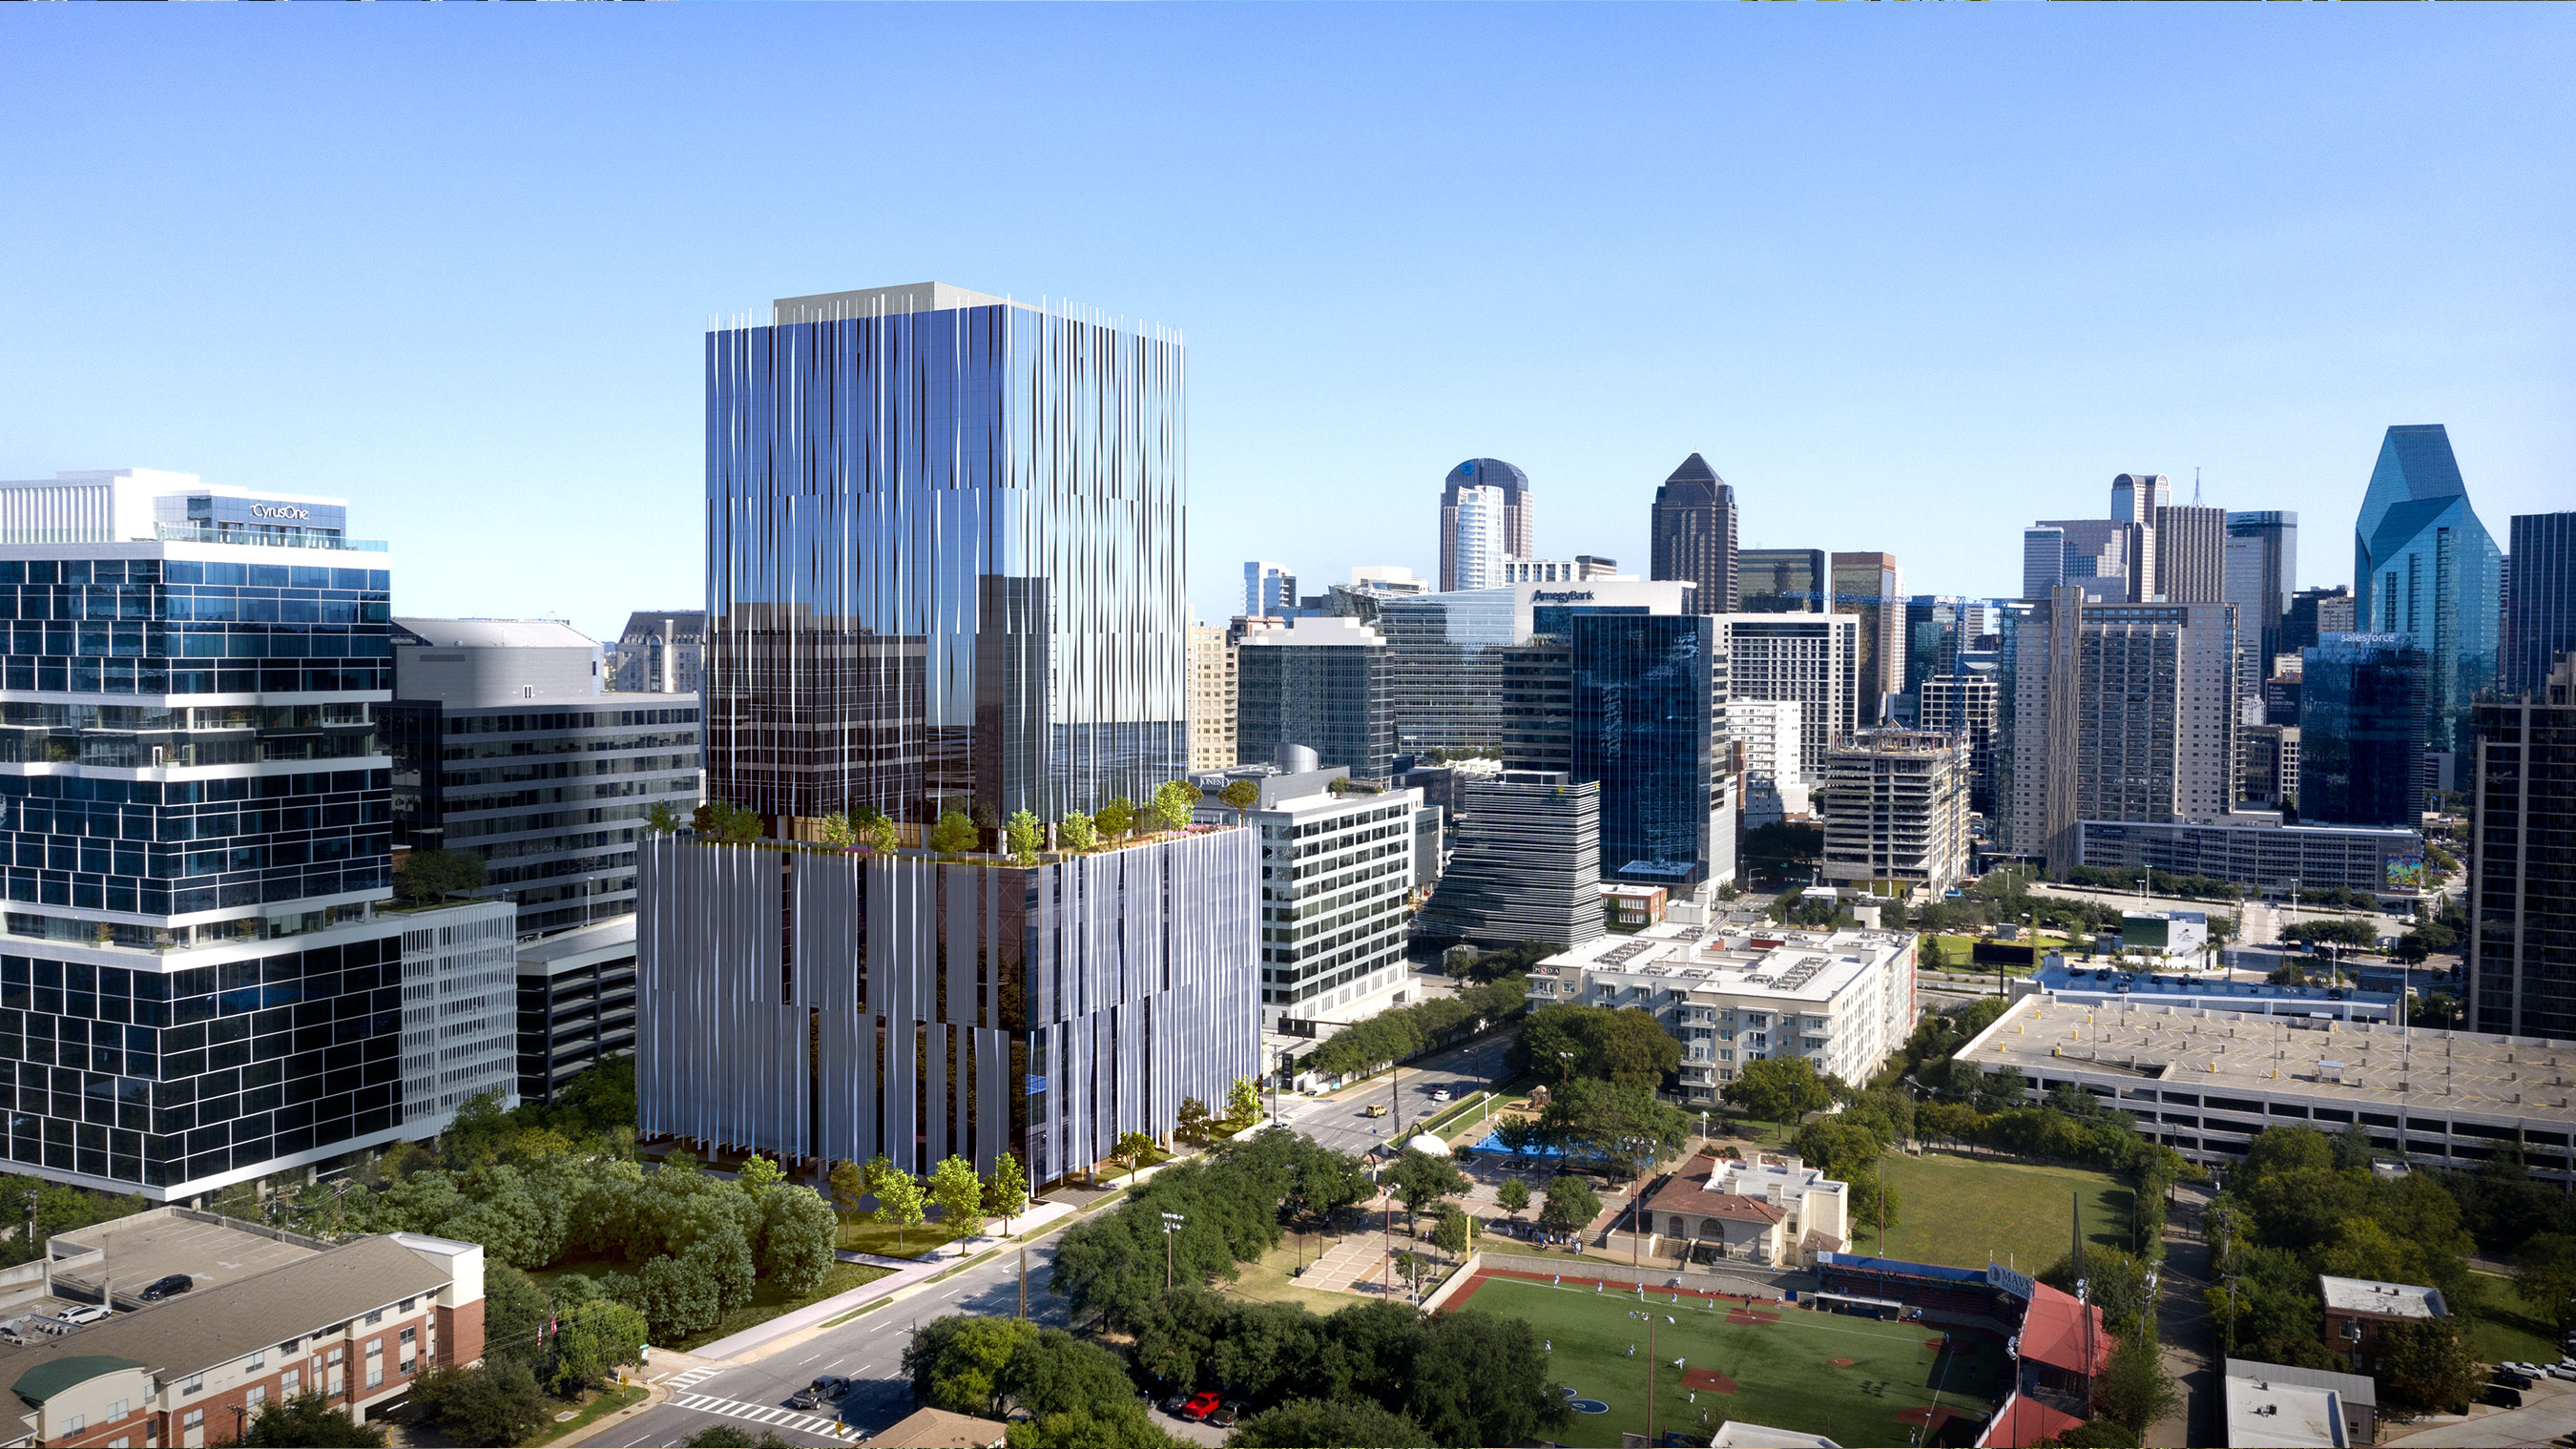 Harwood No. 14's ideal location makes it one of the most accessible buildings in Dallas